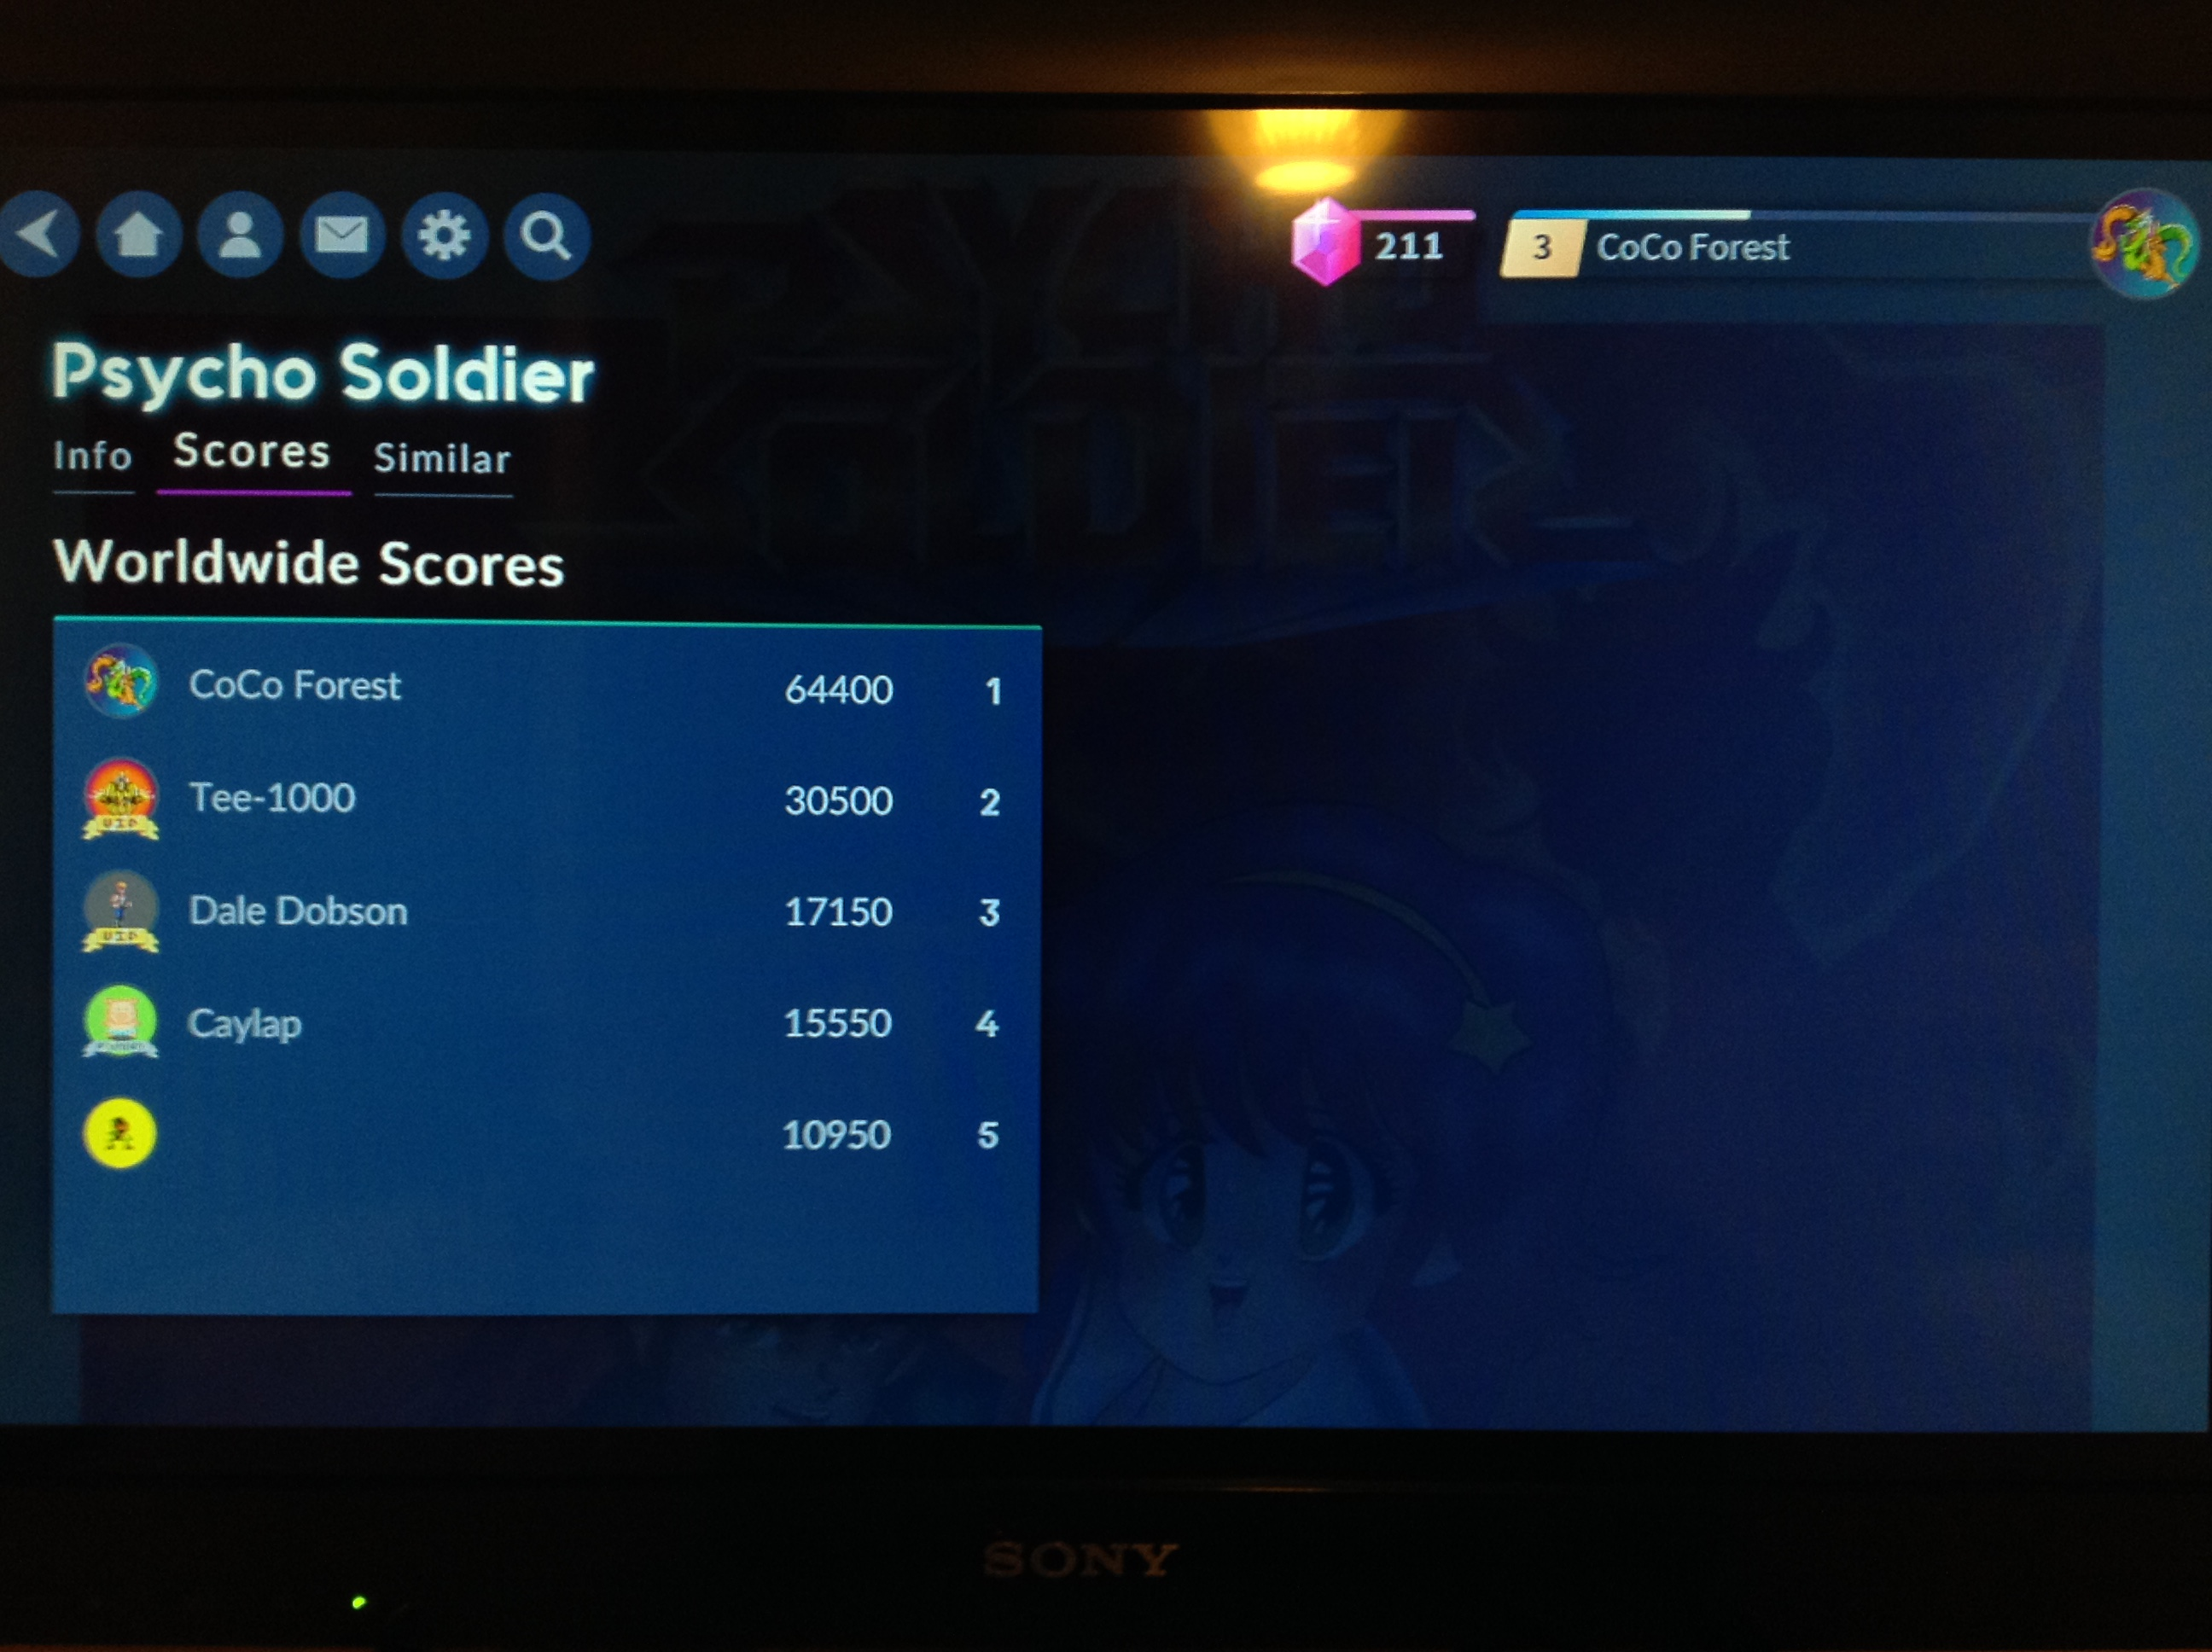 Psycho Soldier 64,400 points